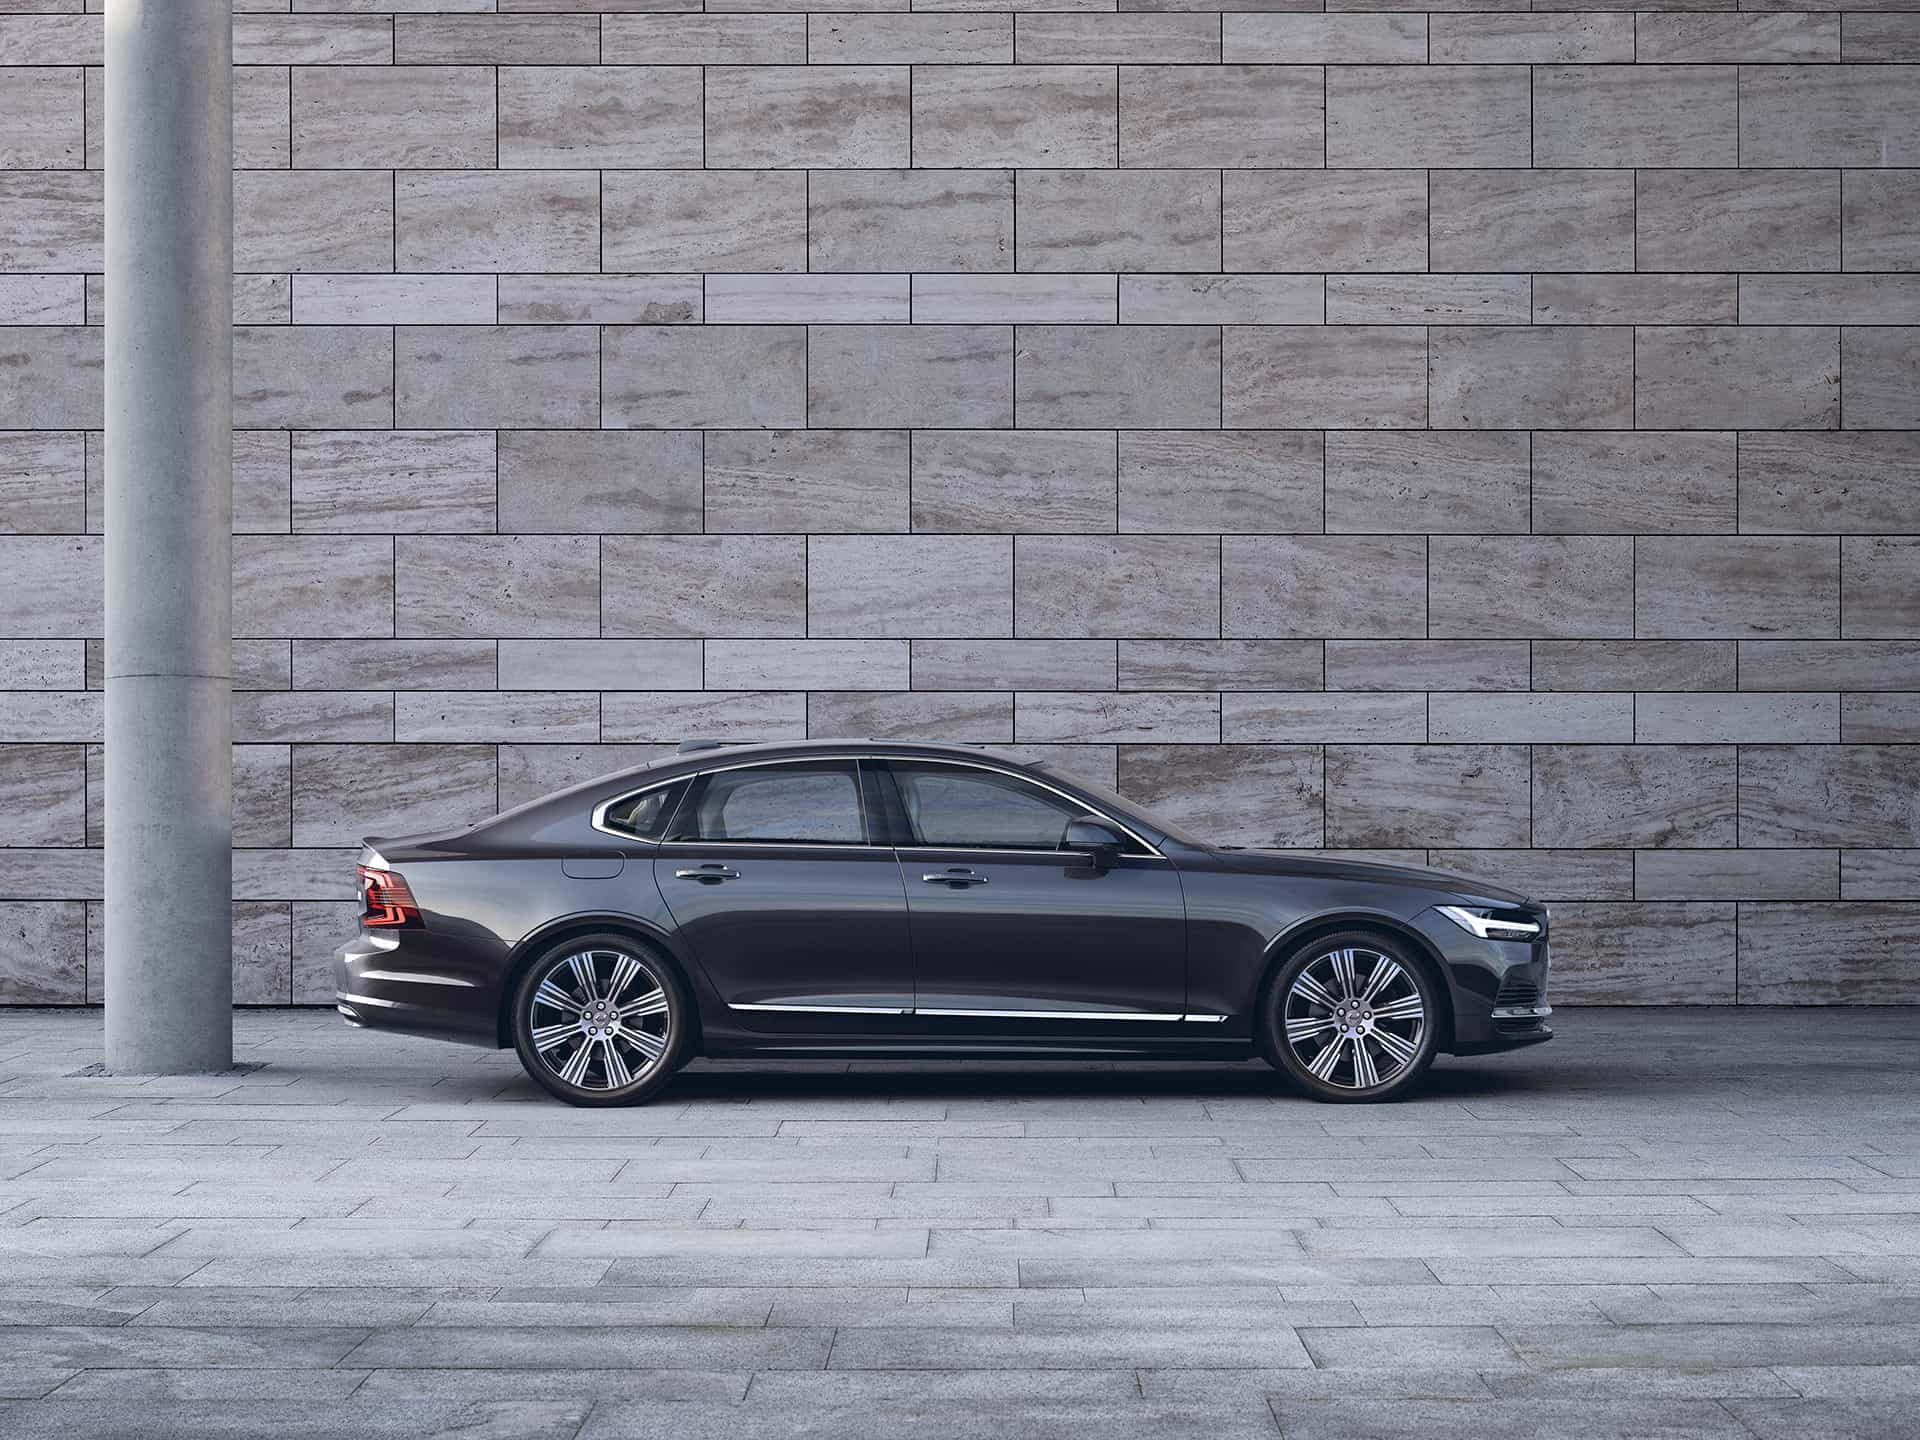 A dark Volvo S90 sedan is parked in front of a grey wall.